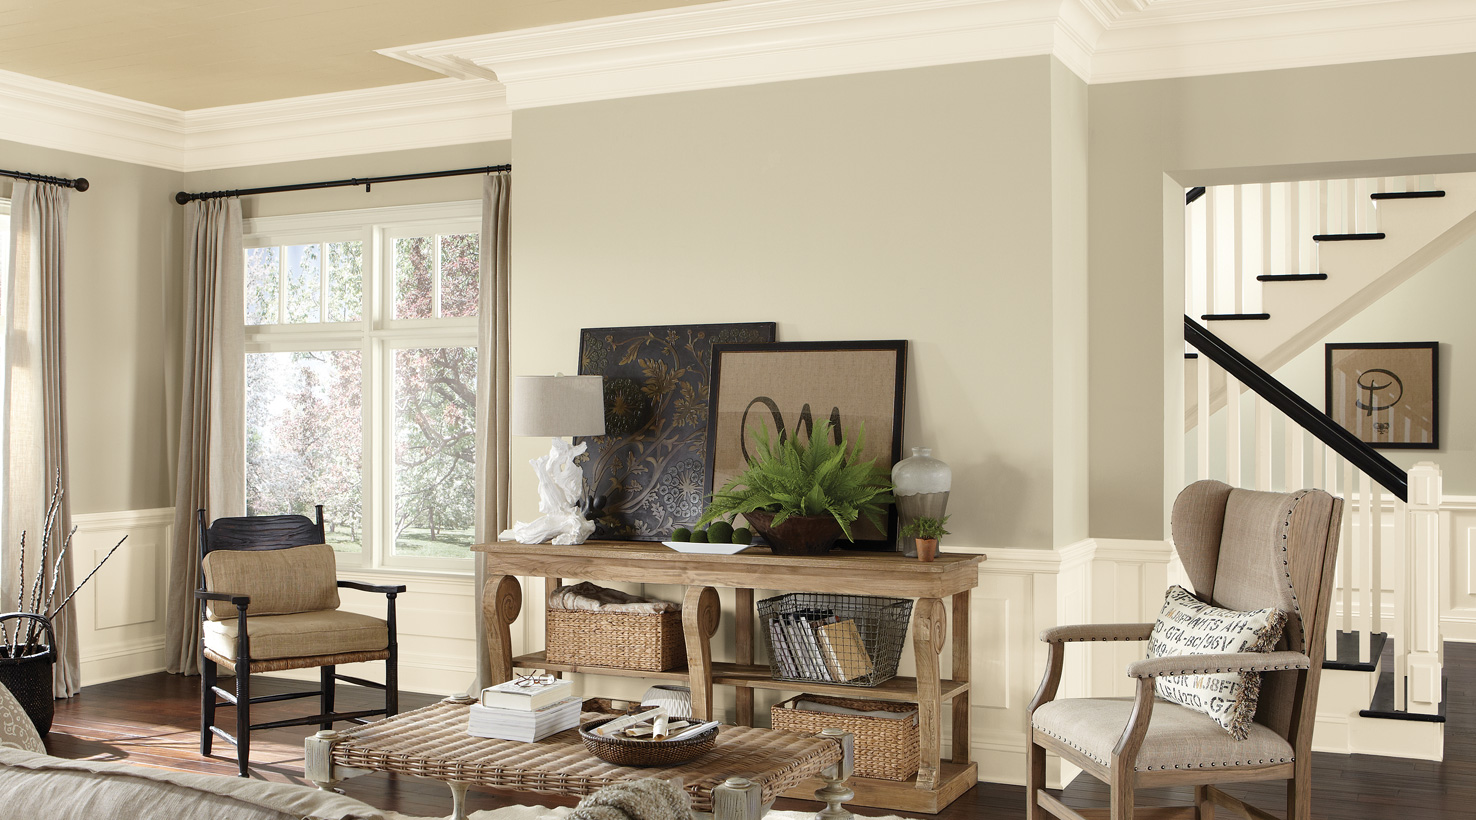 paint for the living room ideas how to make mismatched furniture work color inspiration gallery sherwin williams whites